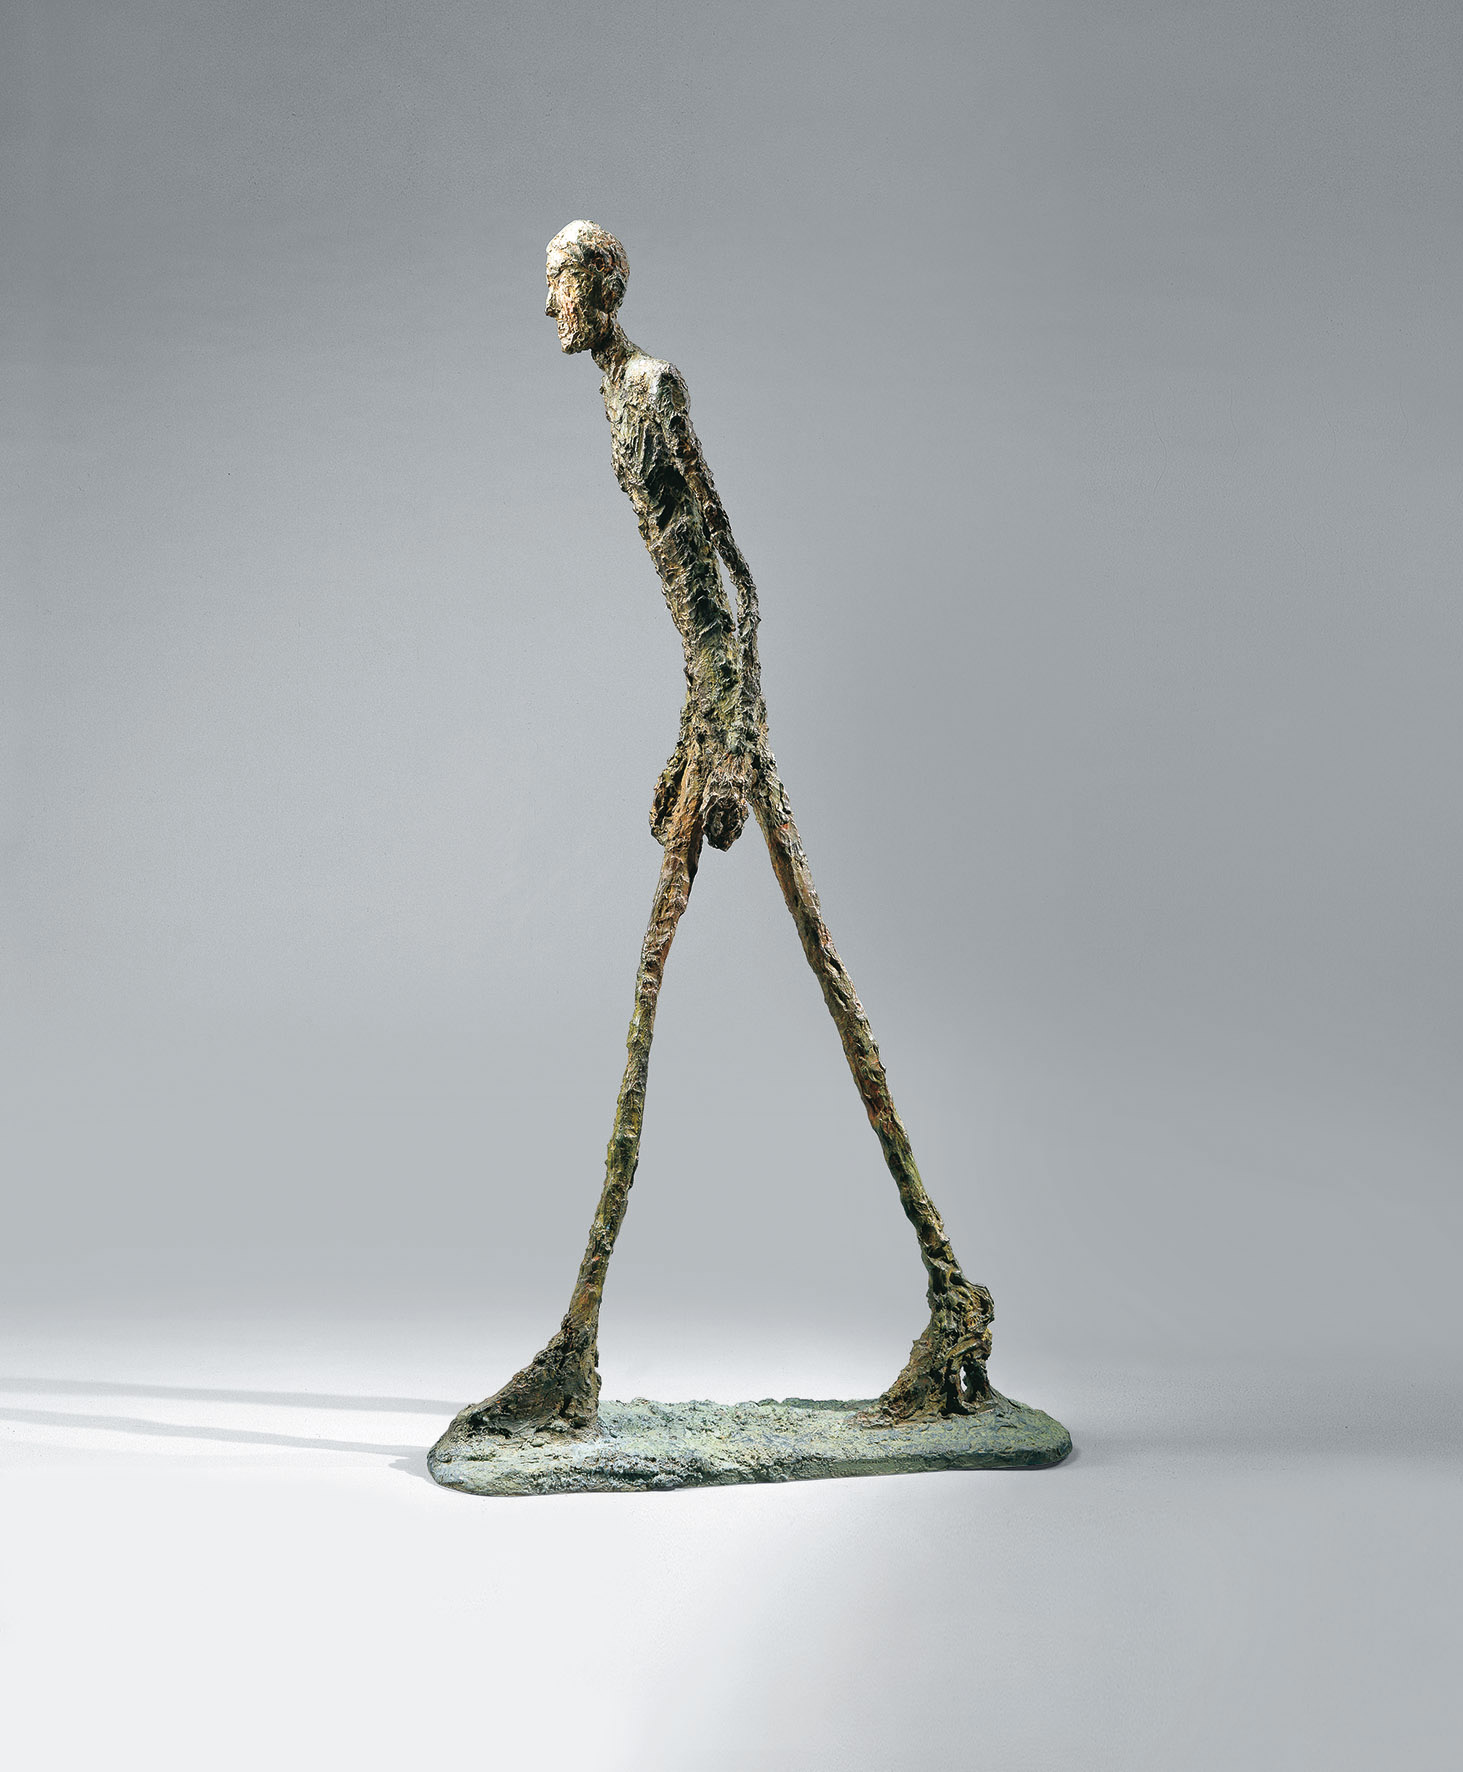 Alberto Giacometti, L'homme qui marche I (L'uomo che cammina I), 1960, bronzo, cm 183 x 26 x 95,5. Saint-Paul-de-Vence, Fondation Marguerite et Aimé Maeght ©Claude Germain - Archives Fondation Maeght (France) © Alberto Giacometti Estate / by Siae in Italy 2019